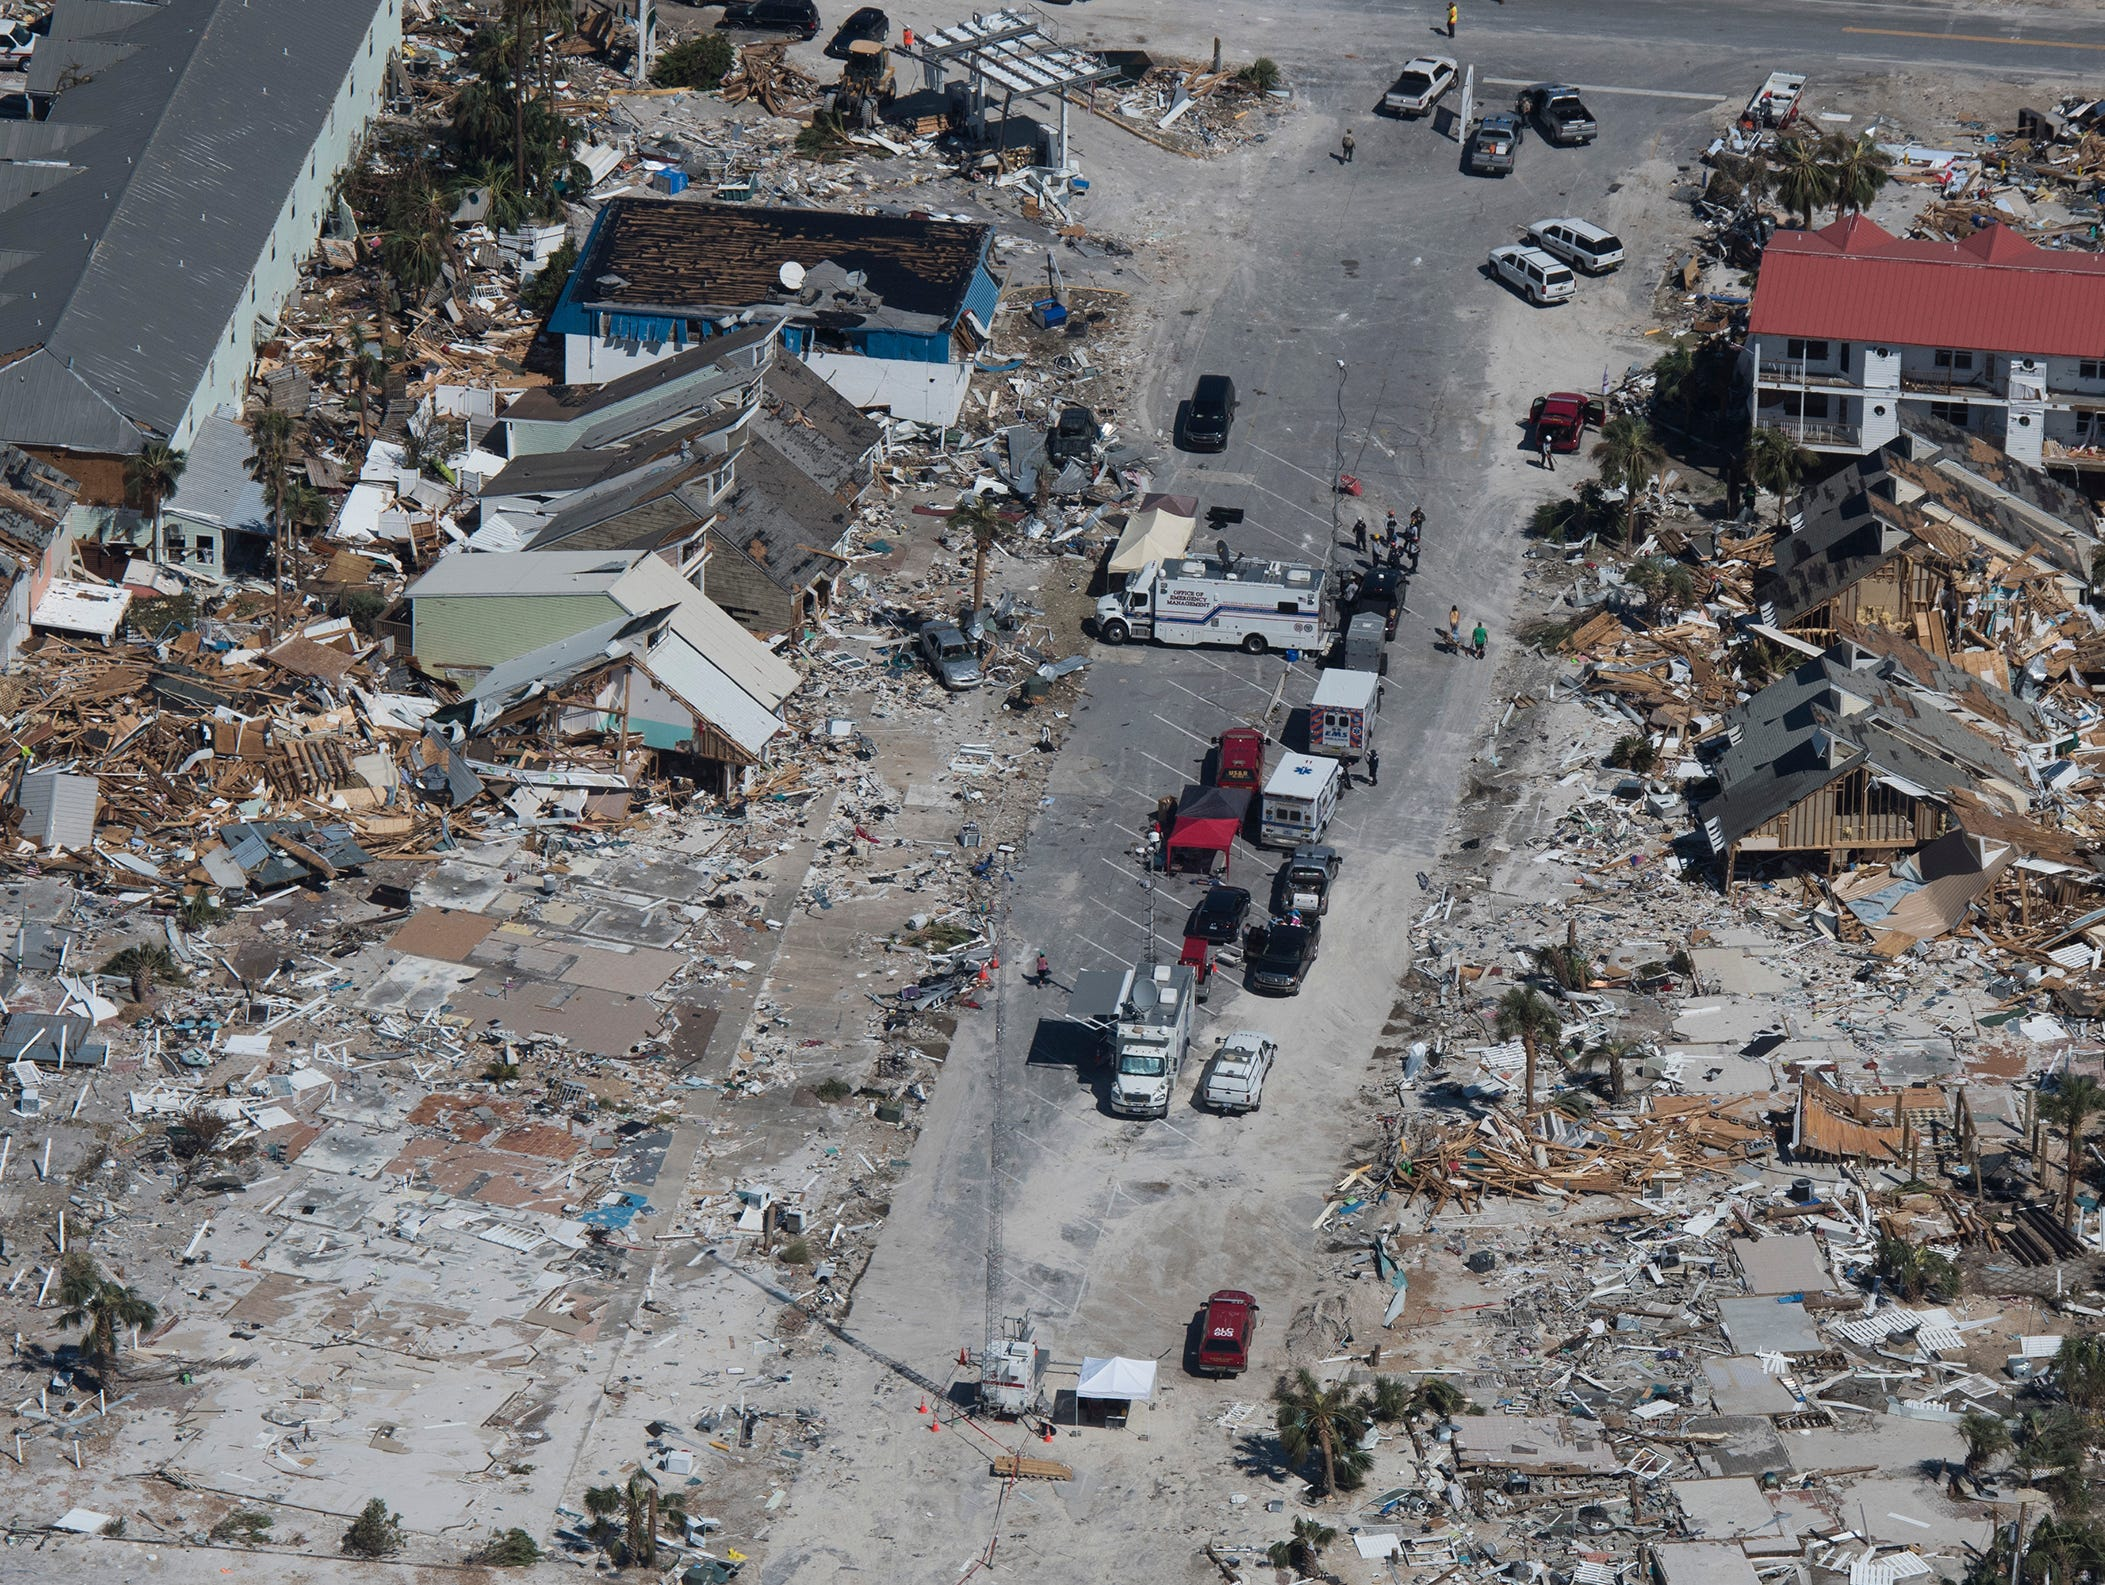 The Civil Air Patrol helps to assess the hurricane damage in Panama City and Mexico Beach areas on Saturday, Oct. 13, 2018.